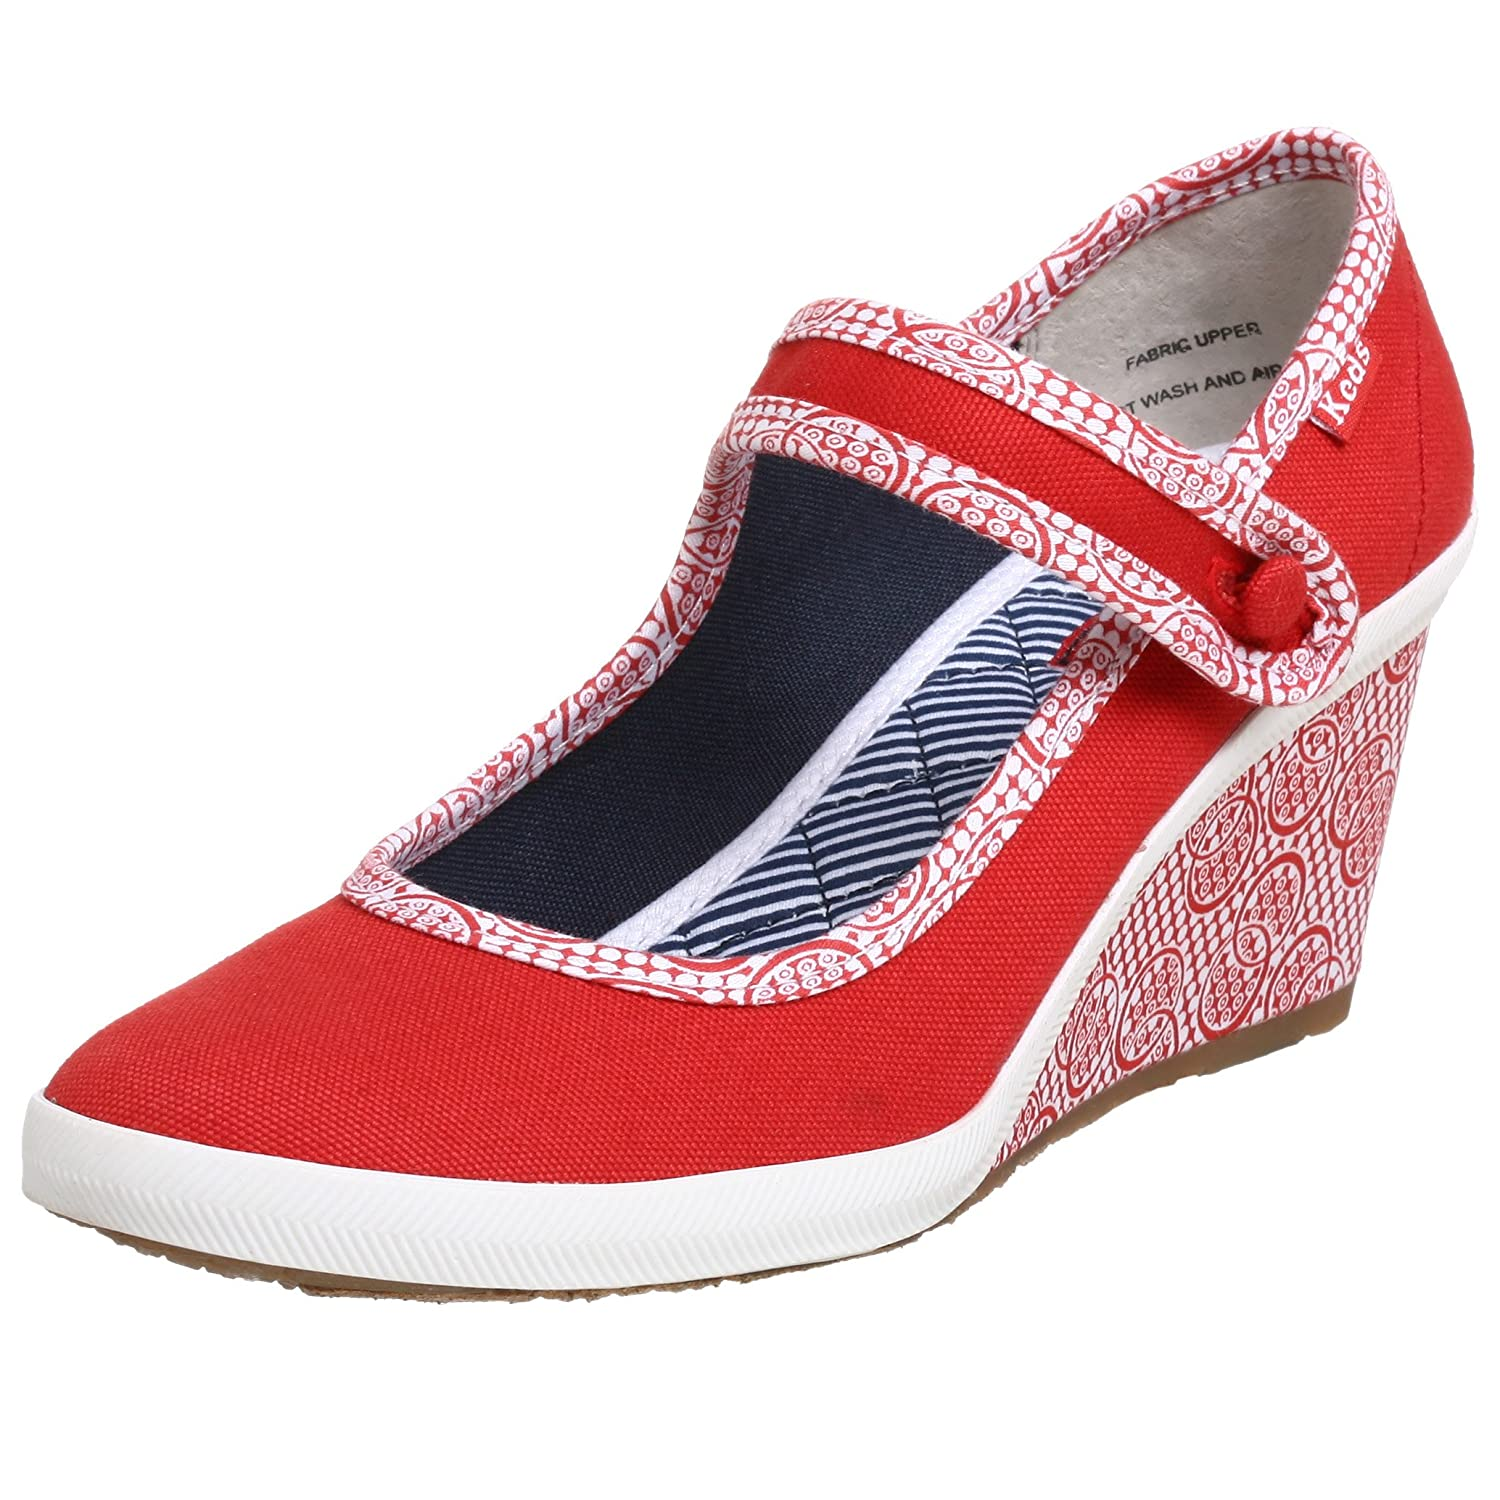 Keds Women's Midnight Wedge - Free Overnight Shipping & Return Shipping: Endless.com